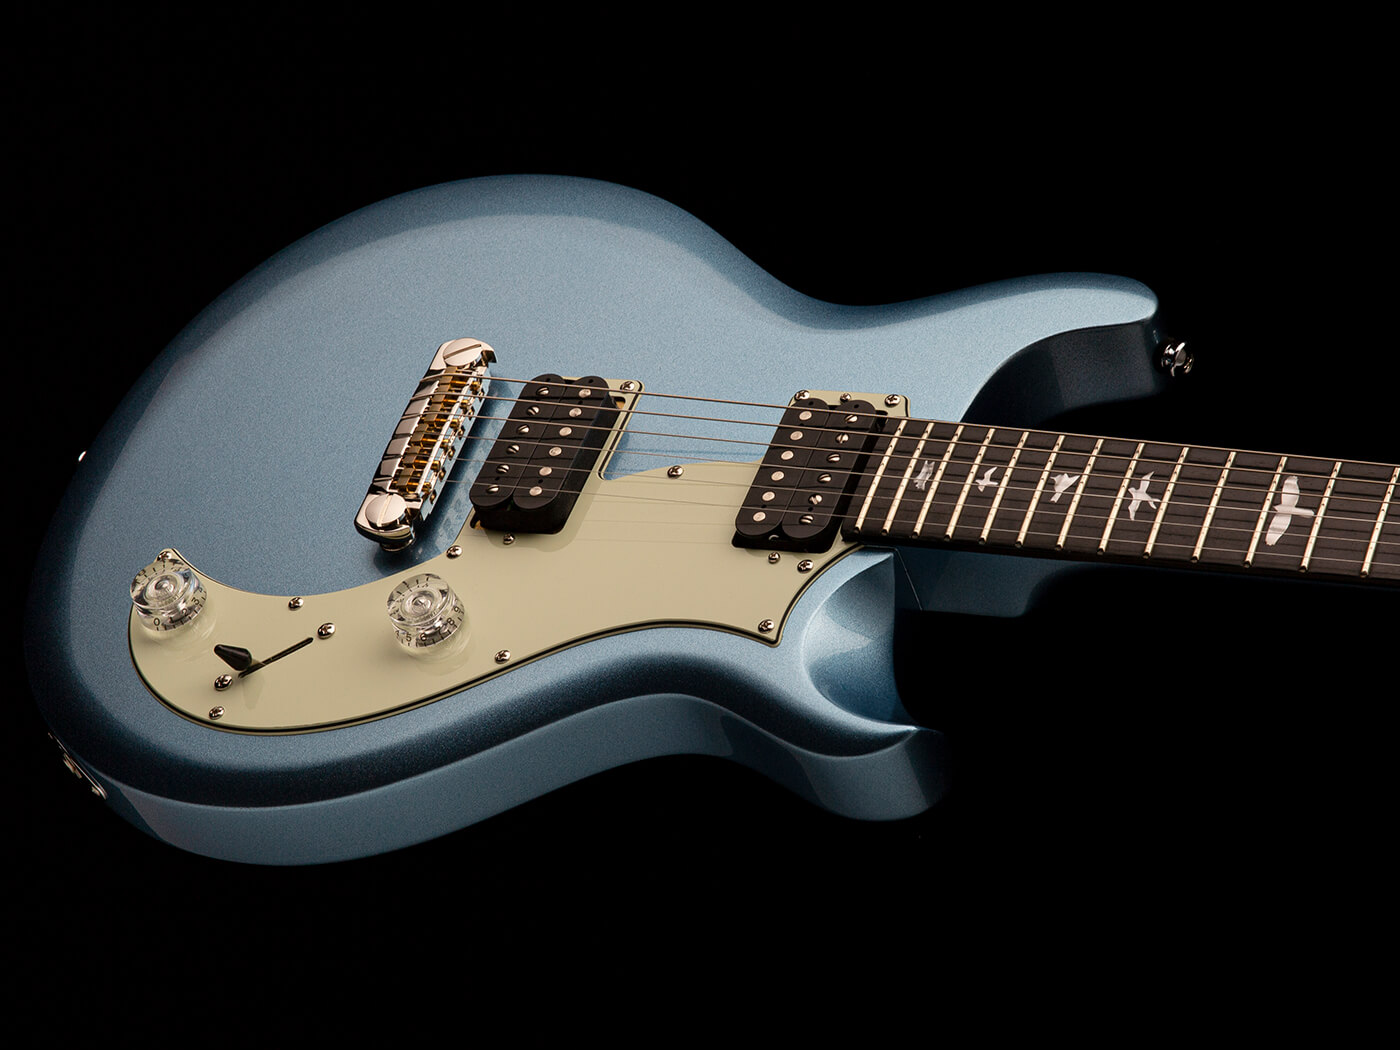 The PRS SE Mira in Frost Blue Metallic.